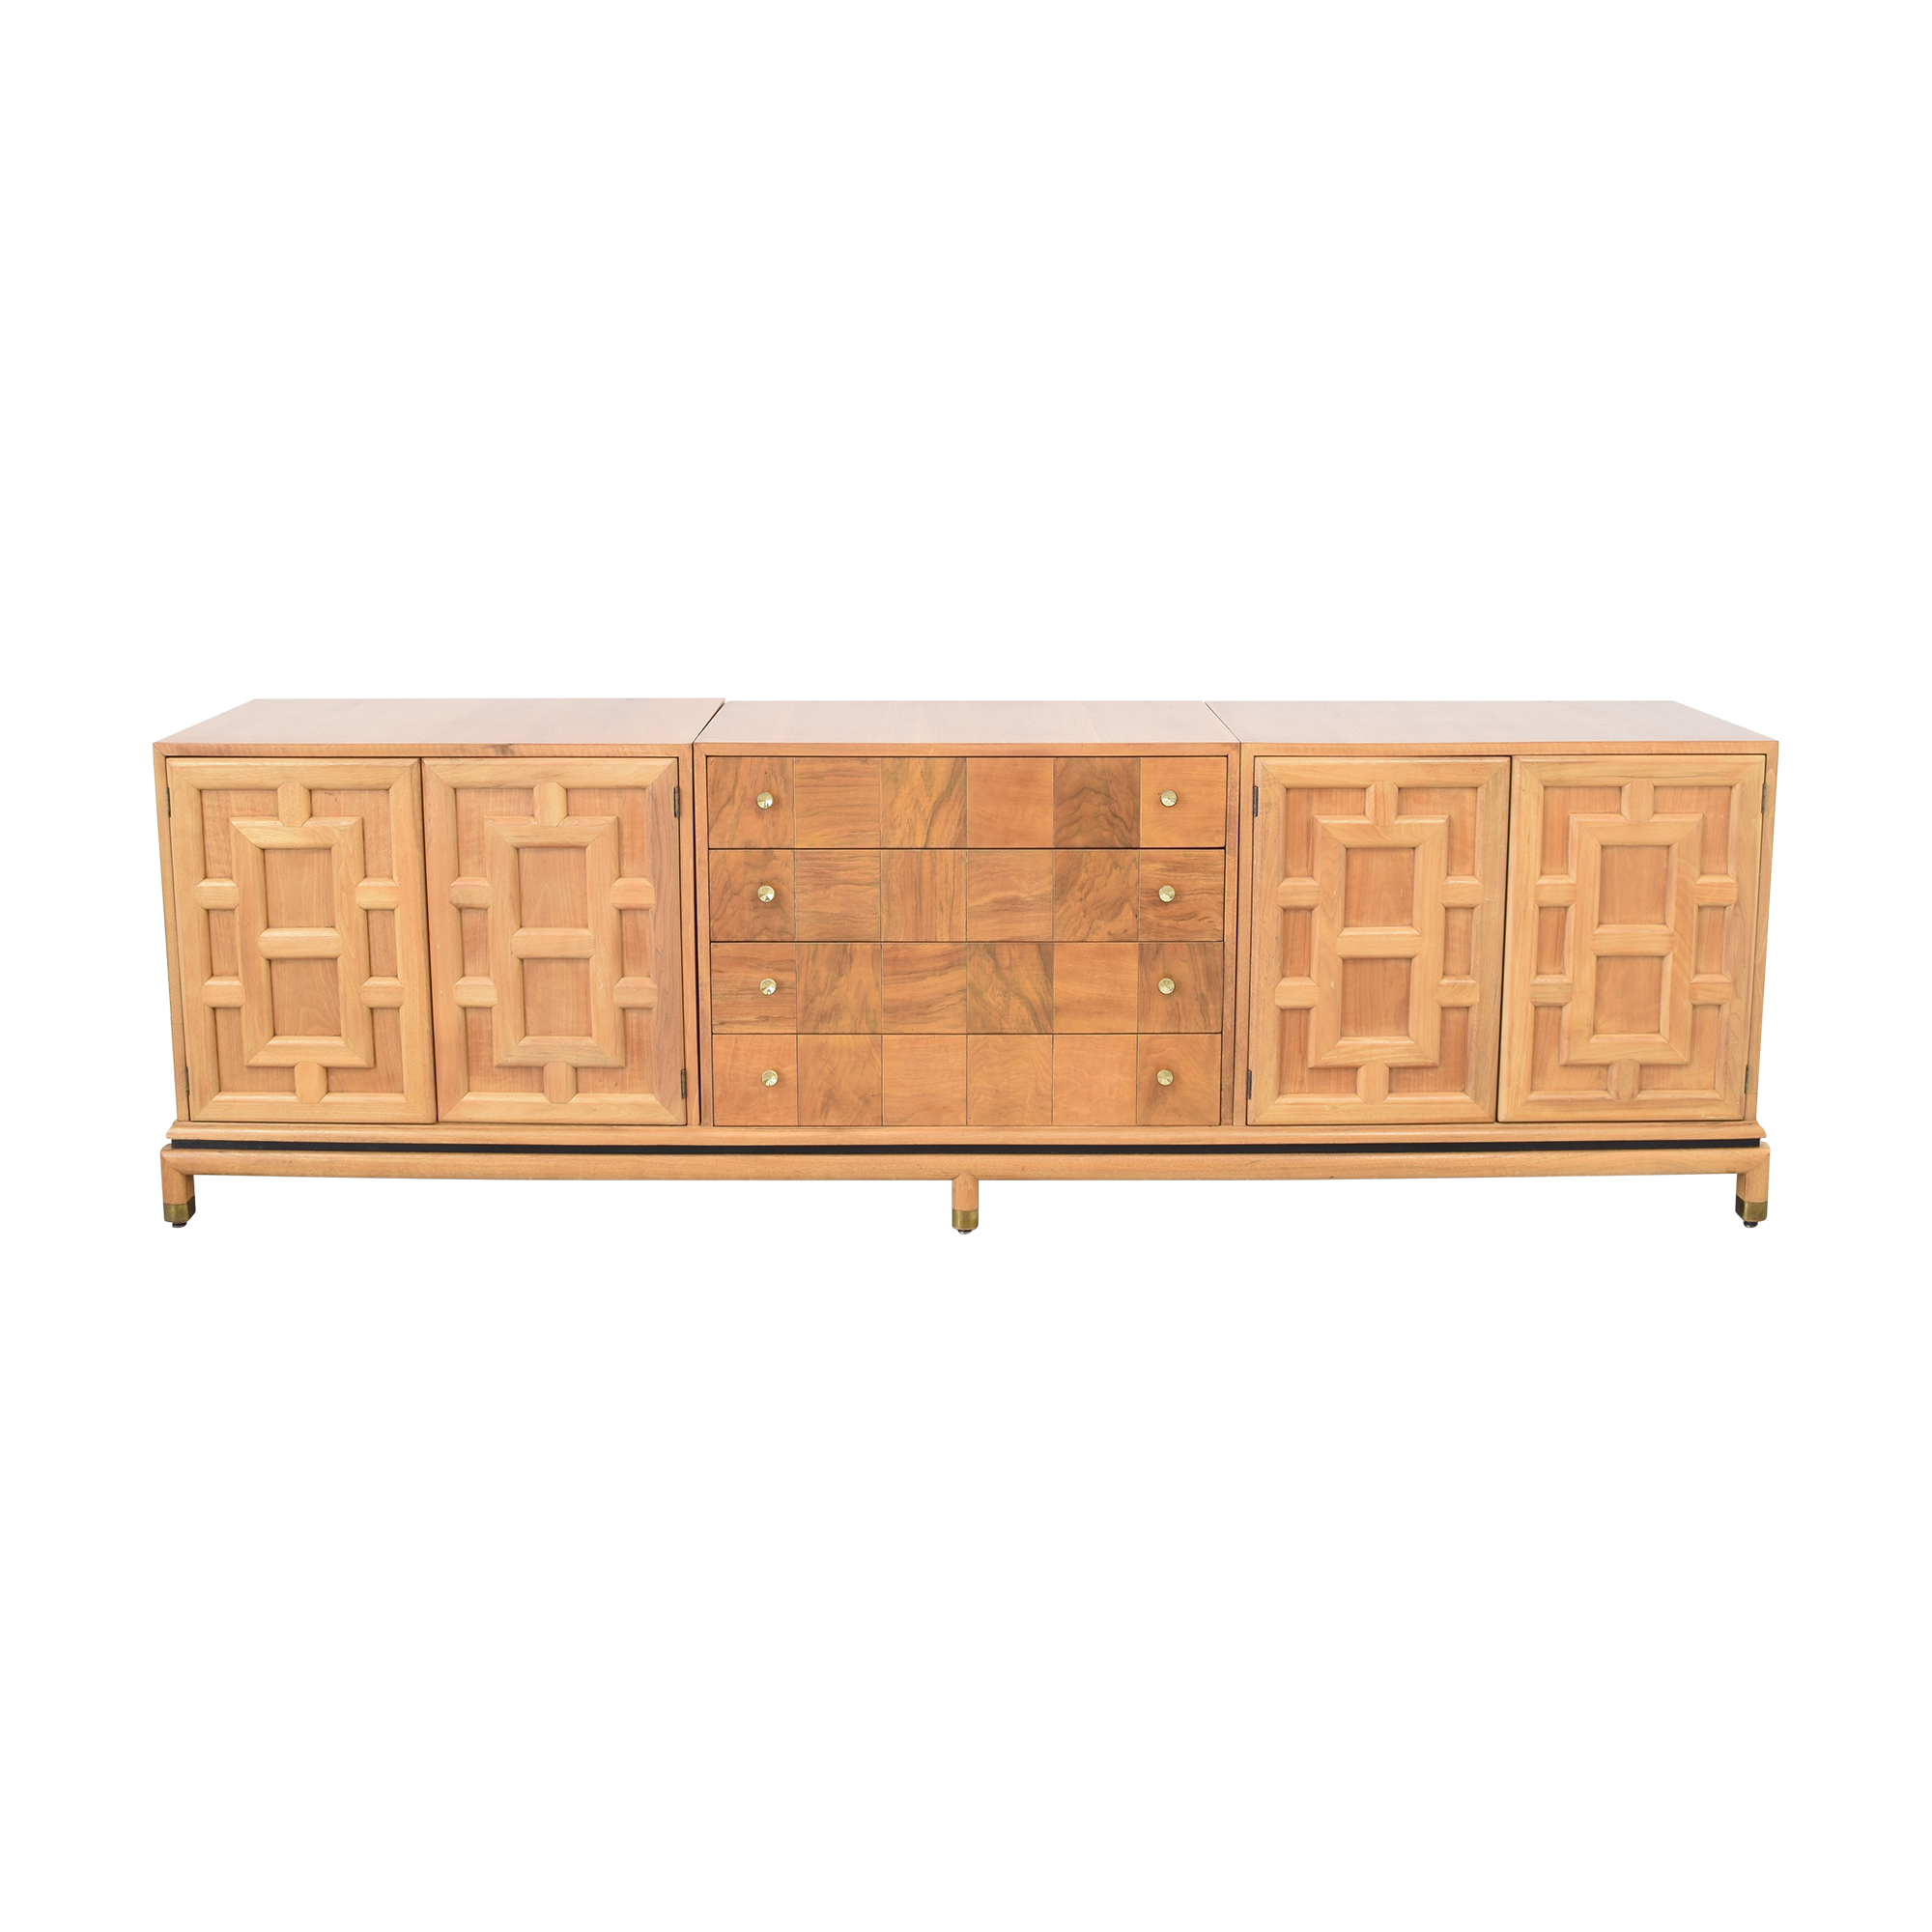 Johnson Furniture Johnson Furniture Geometric Sideboard light brown